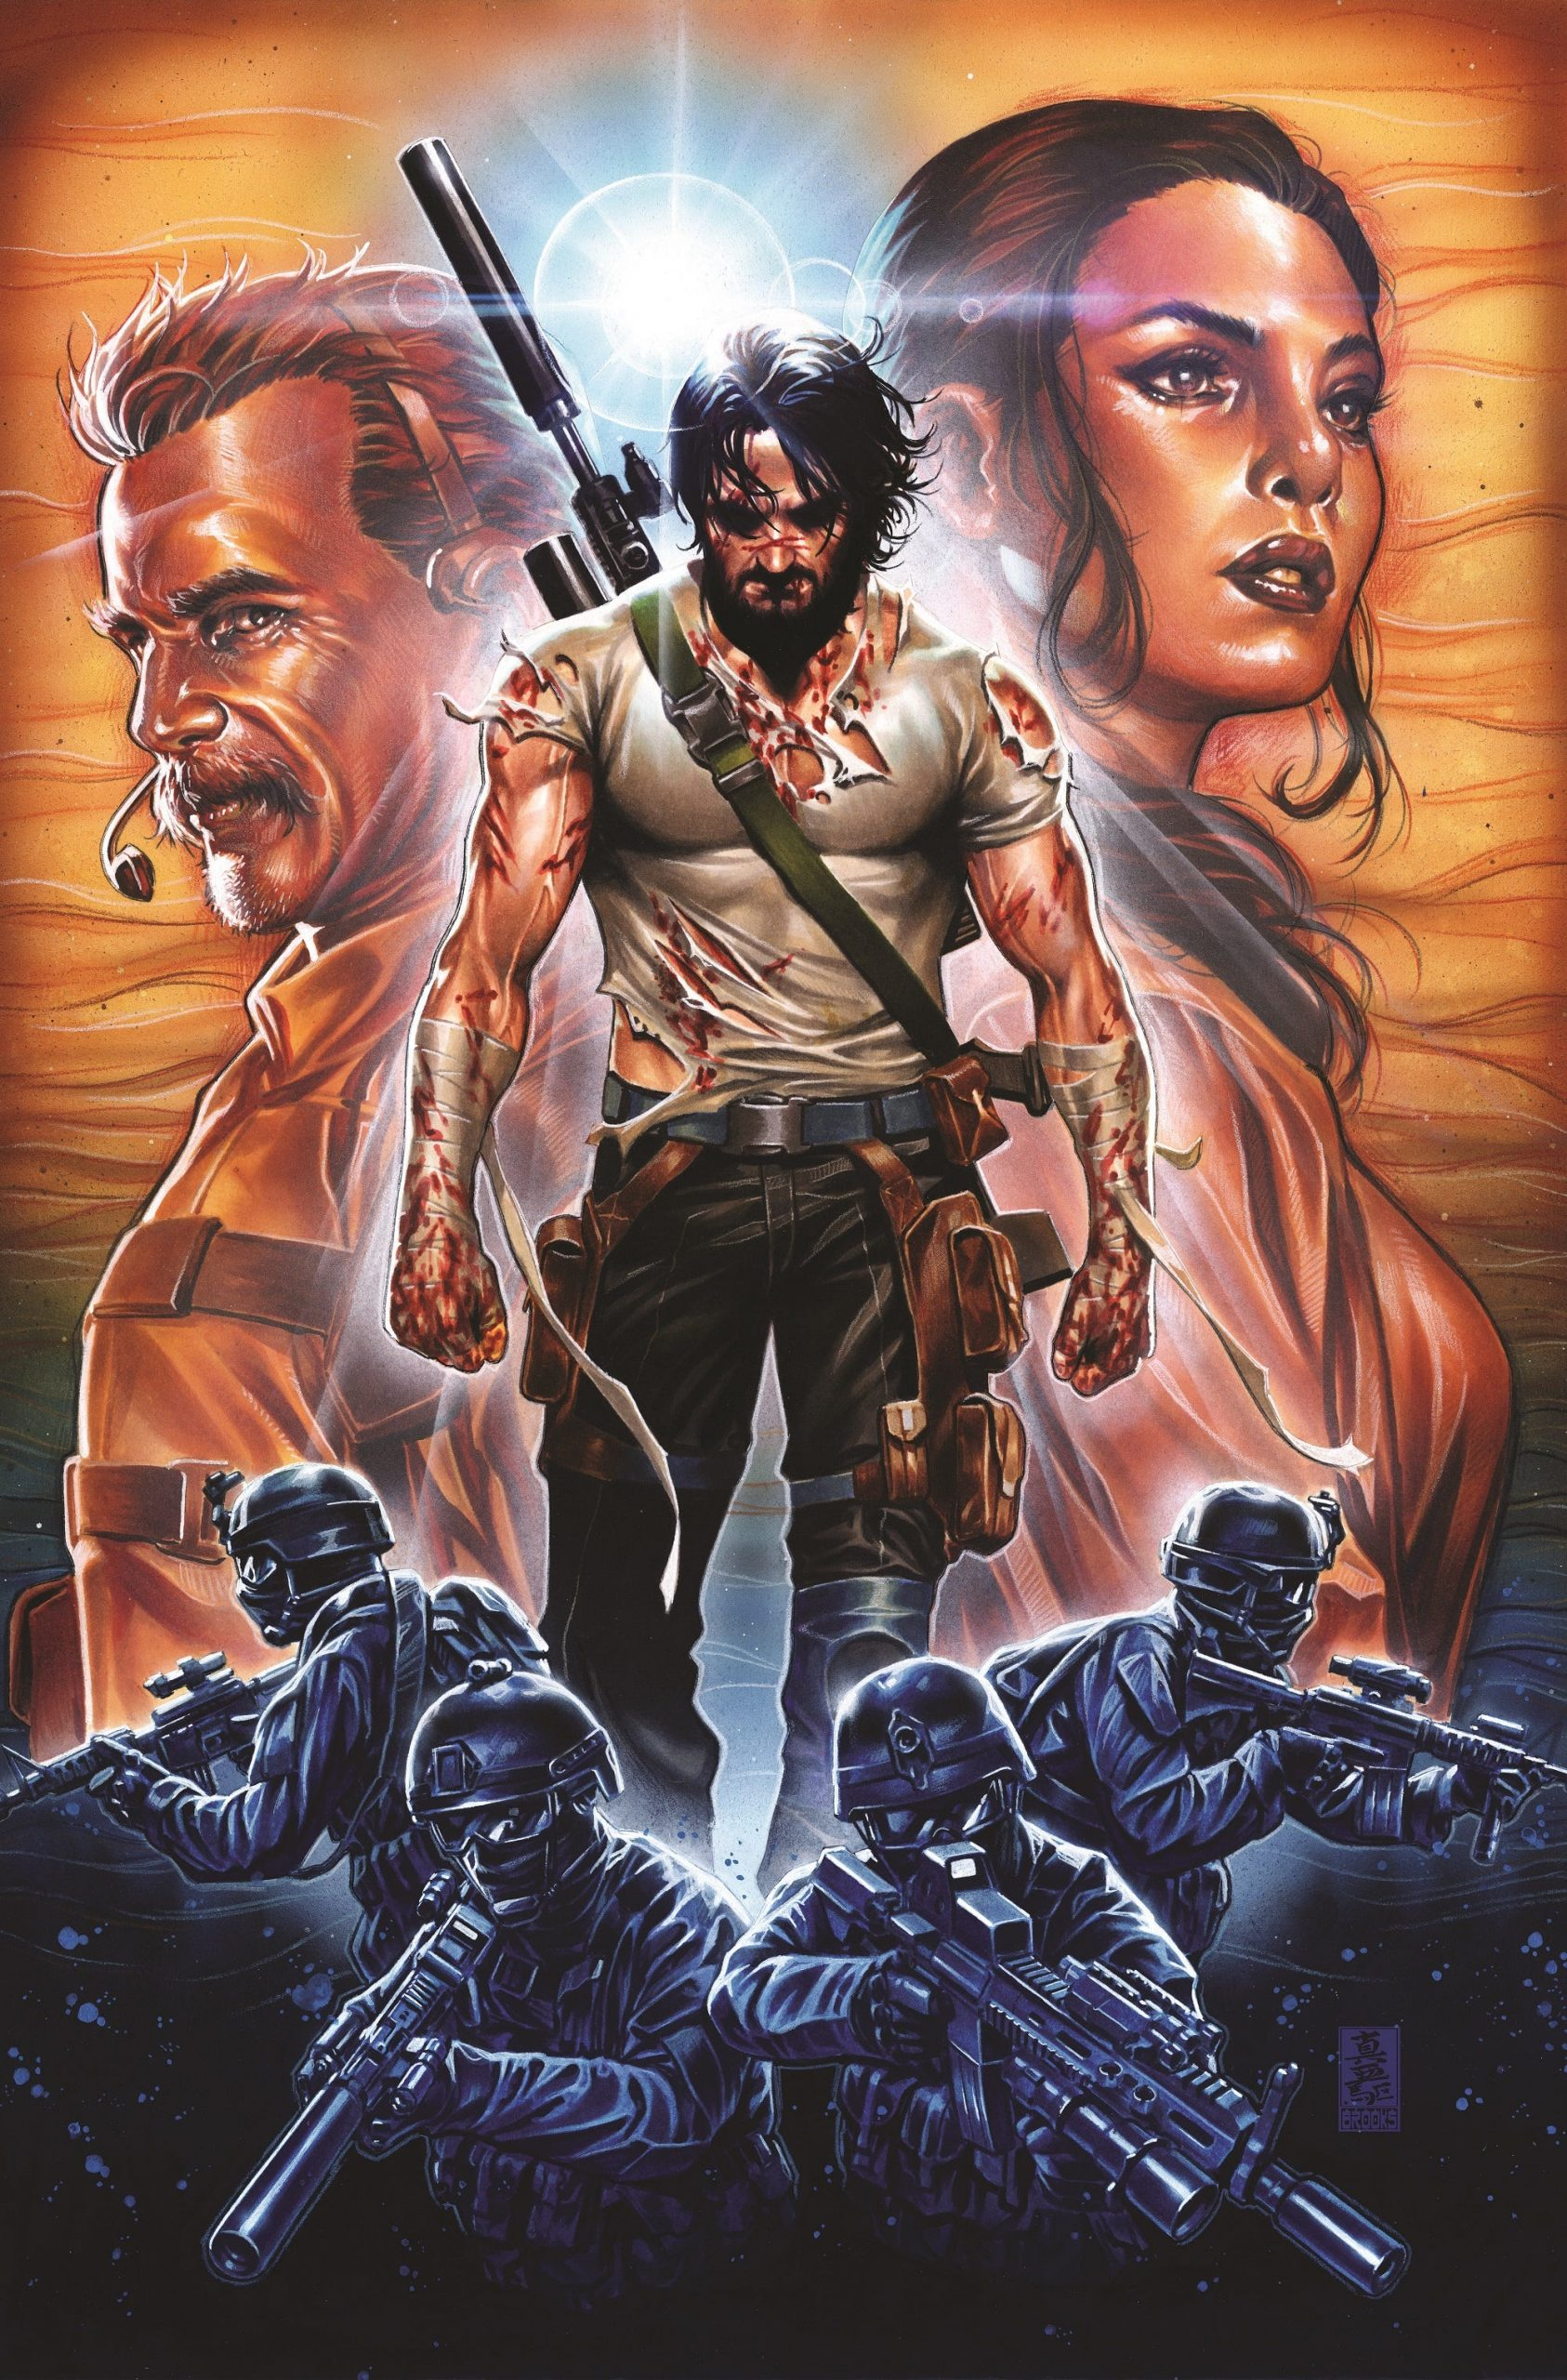 Keanu Reeves had earlier debuted as a comic book writer with BRZRKR